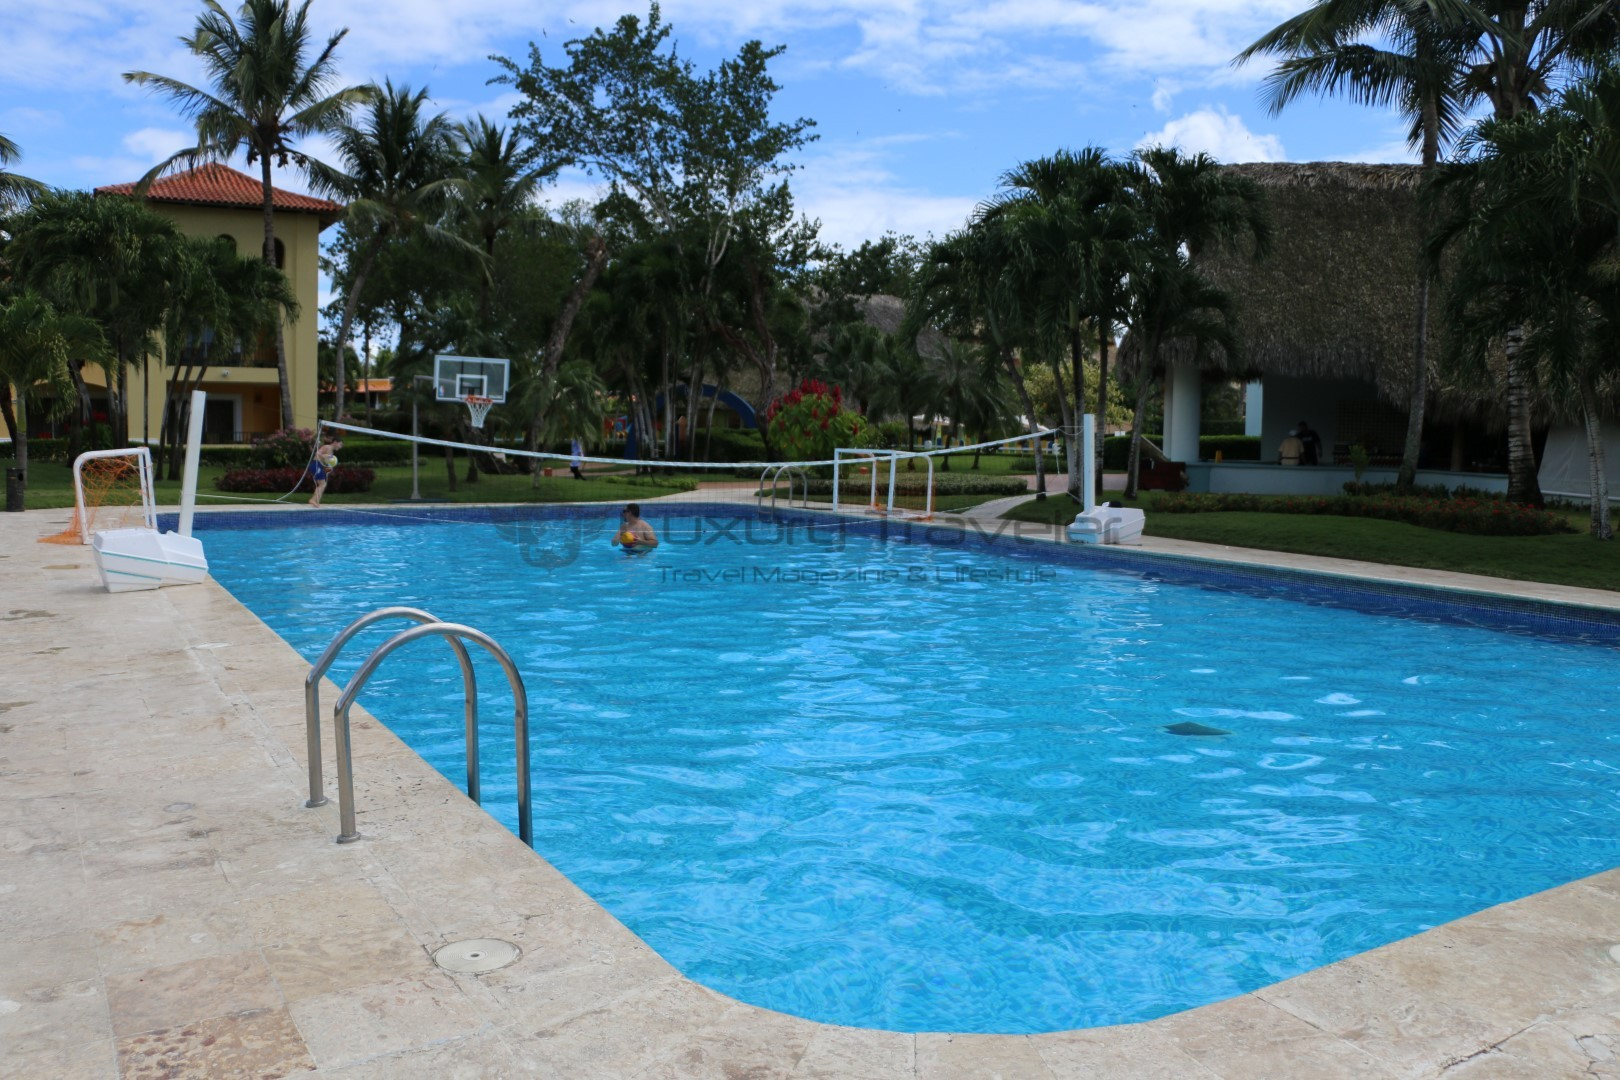 Iberostar_Hacienda_Dominicus_Republica_Dominicana_Hotel_Pool